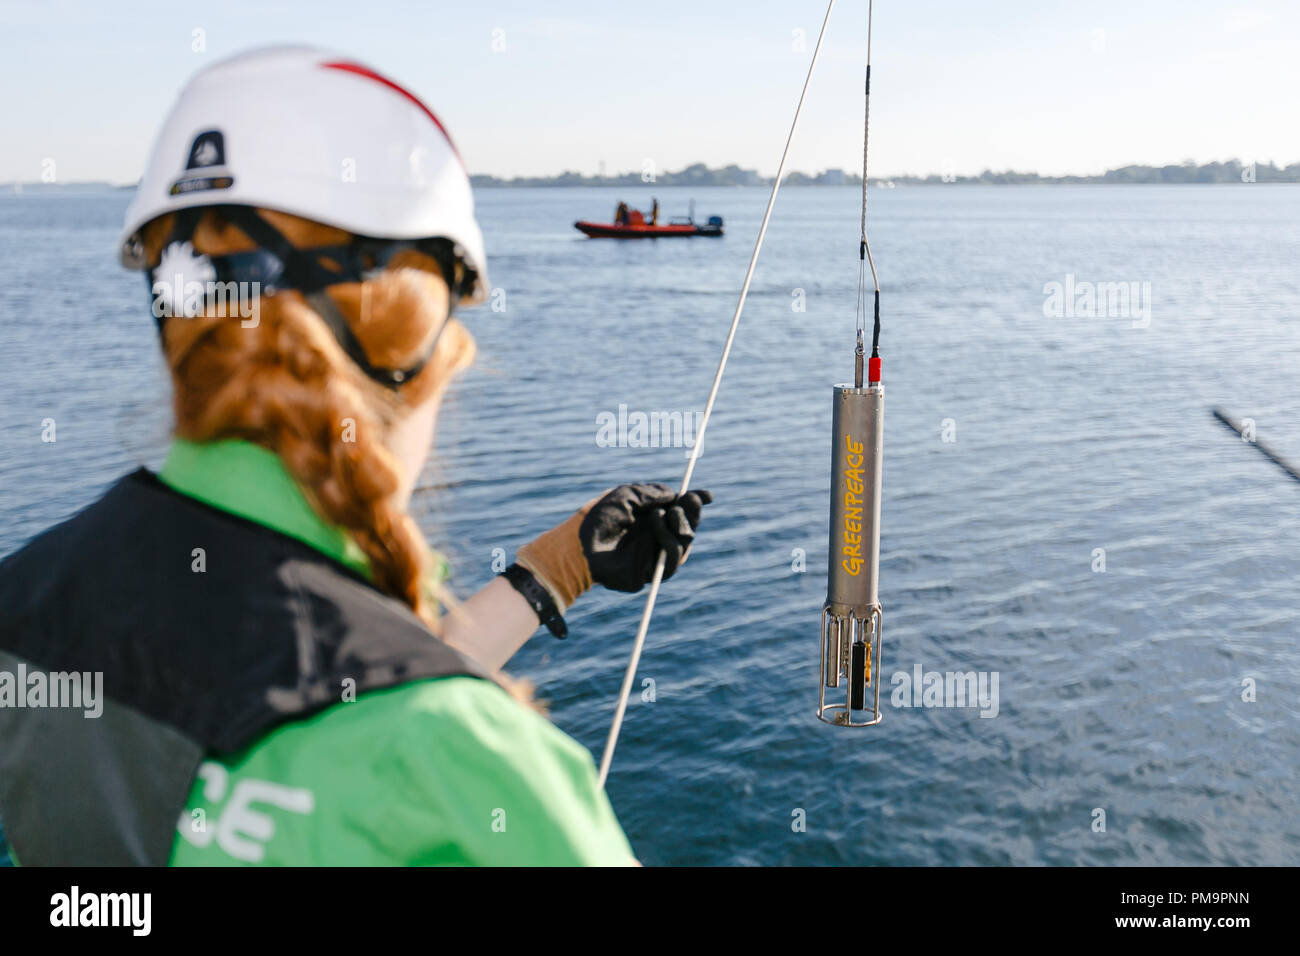 18 September 2018, Schleswig-Holstein, Gluecksburg: Student Daniela Herrmann puts a CTD probe into the water to check the salinity and temperature. At the start of the Greenpeace Marine Conservation Tour, scientists in the Flensburg Fjord took water samples and examined them for fertiliser contamination. Photo: Frank Molter/dpa - Stock Image